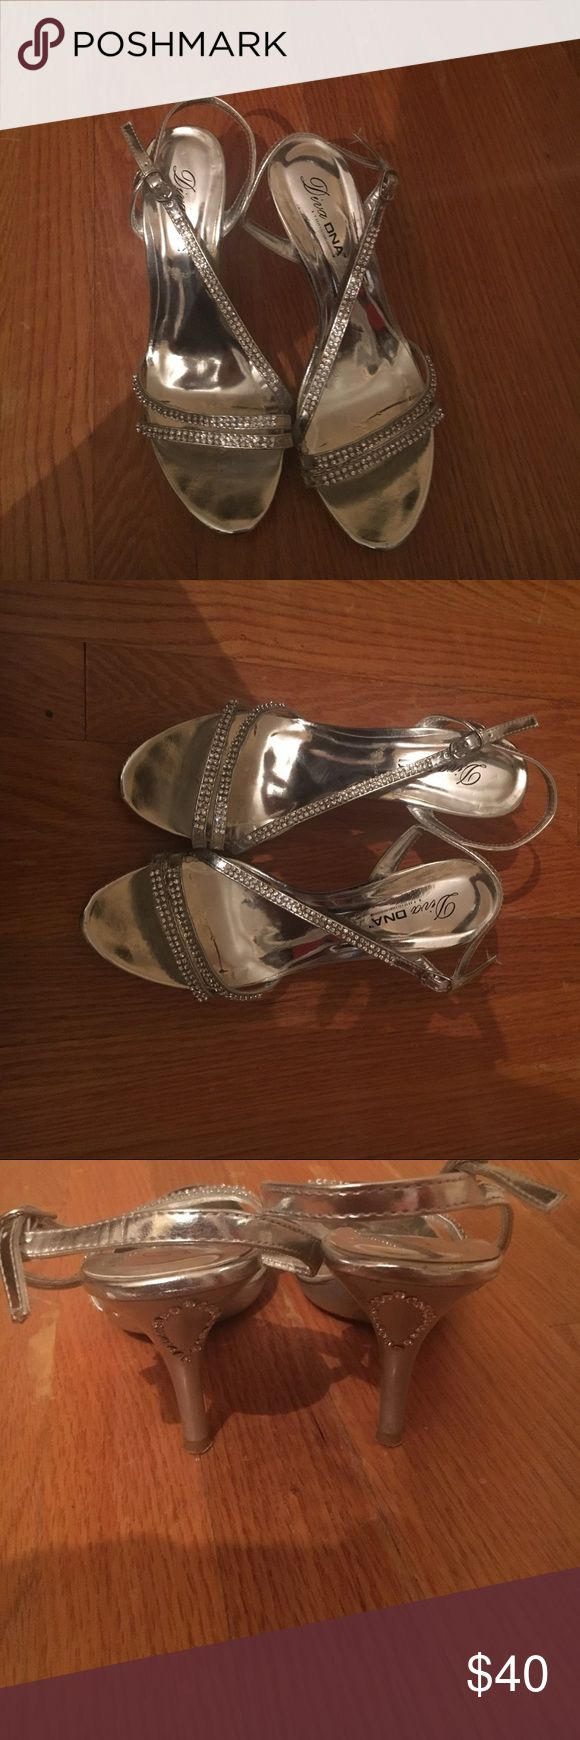 Silver Rhinestone heels strappy evening shoe Worn once to prom. Took off after pictures. Only one rhinestone missing on the way end, can't even tell. Great evening heels for special occasions. diva dna Shoes Heels